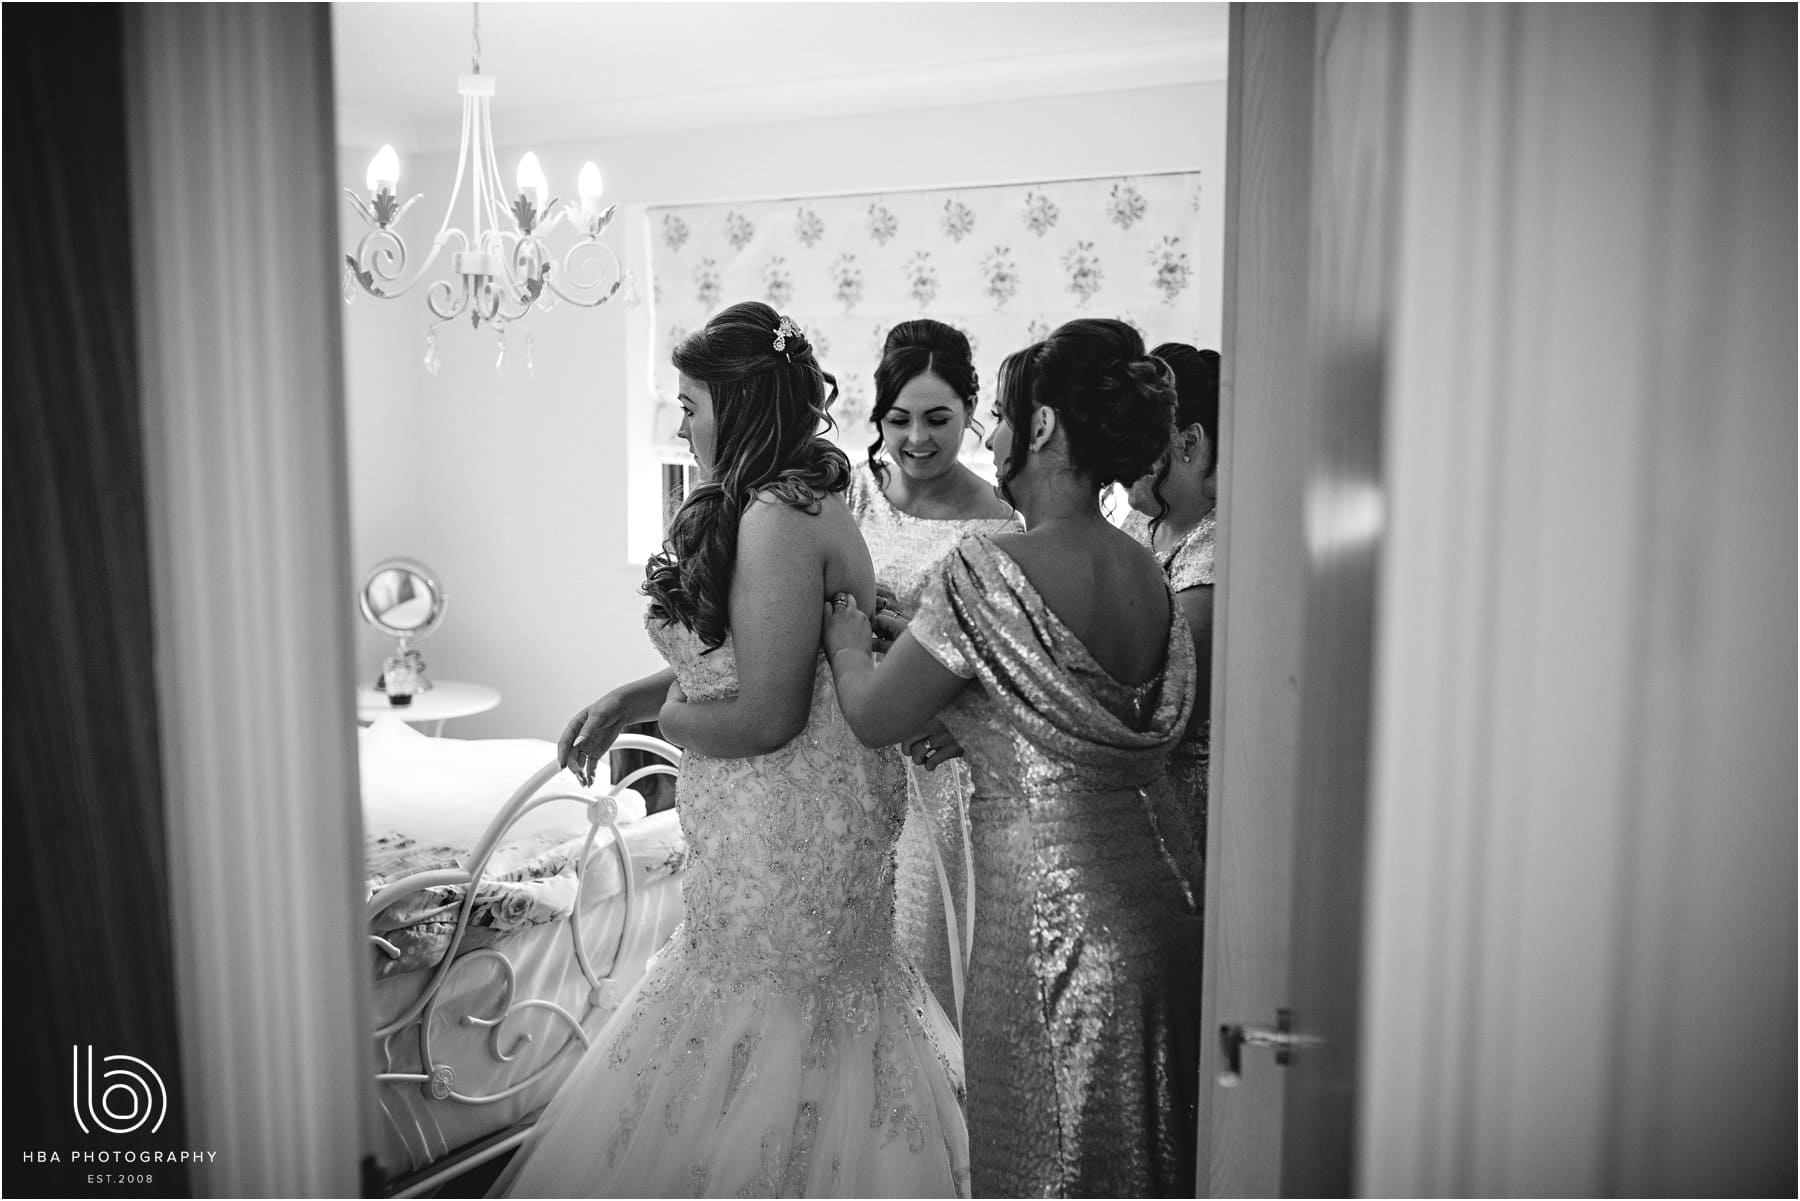 the bridesmaids helping the bride